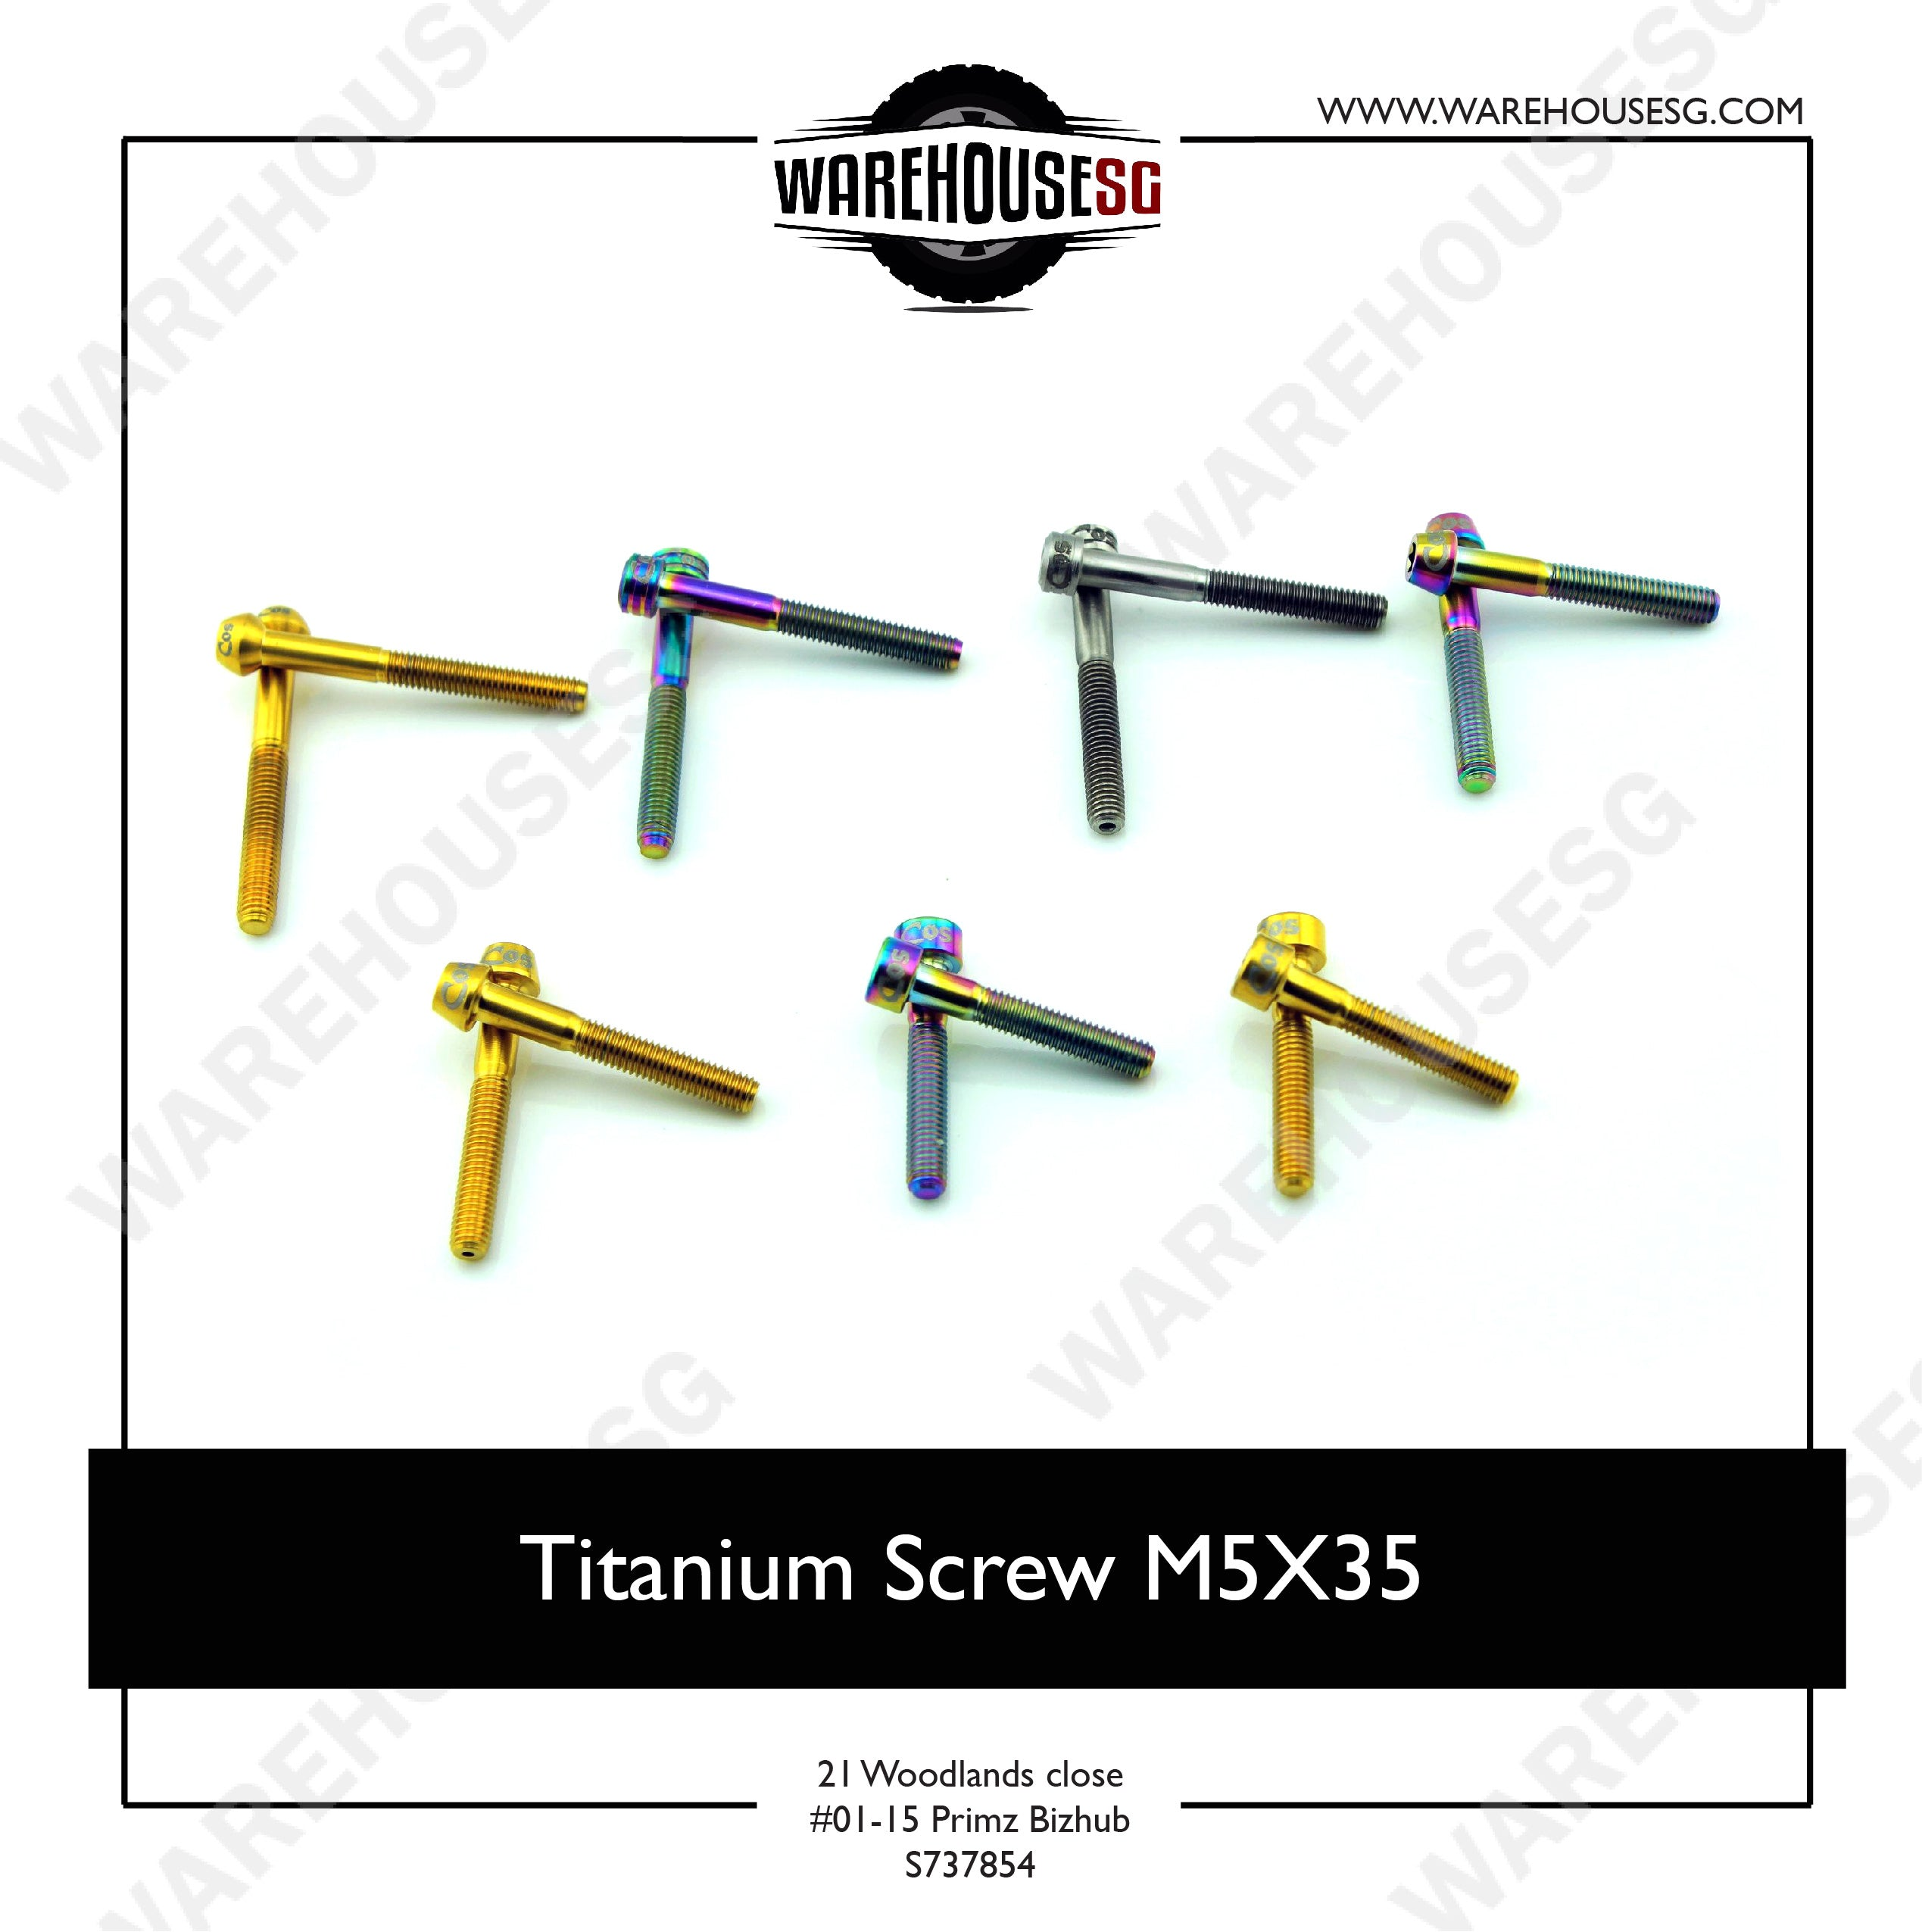 Titanium Screw M5X35